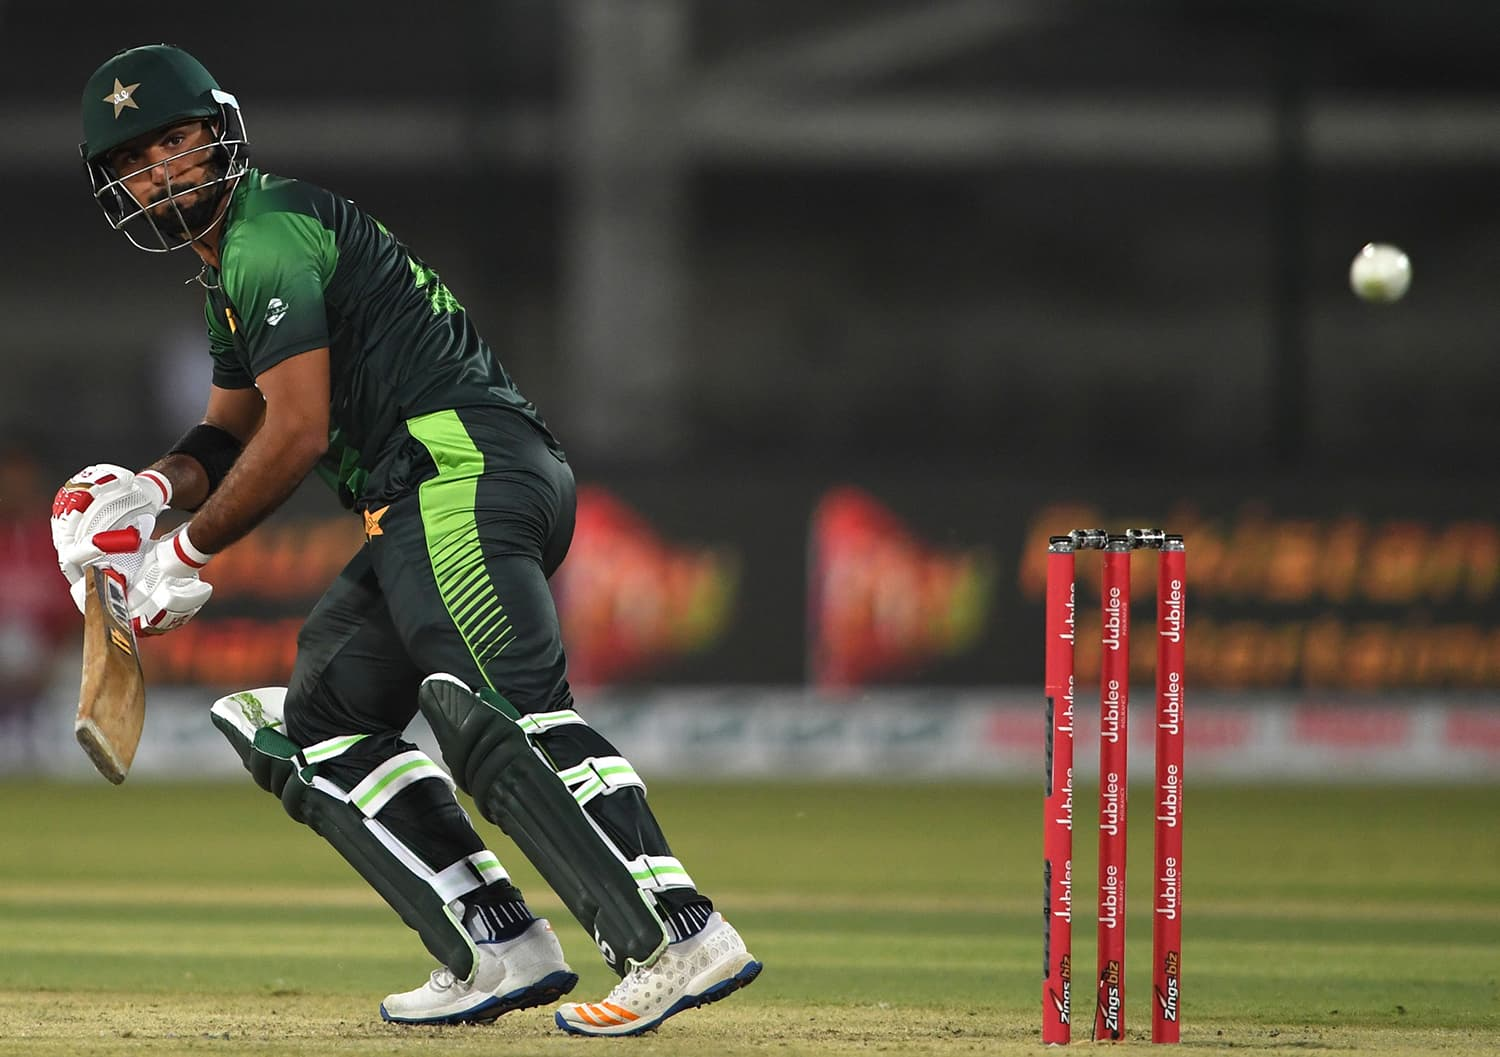 Hussain Talat watches the ball after playing a shot during the first T20 cricket match between Pakistan and West Indies. ─AFP